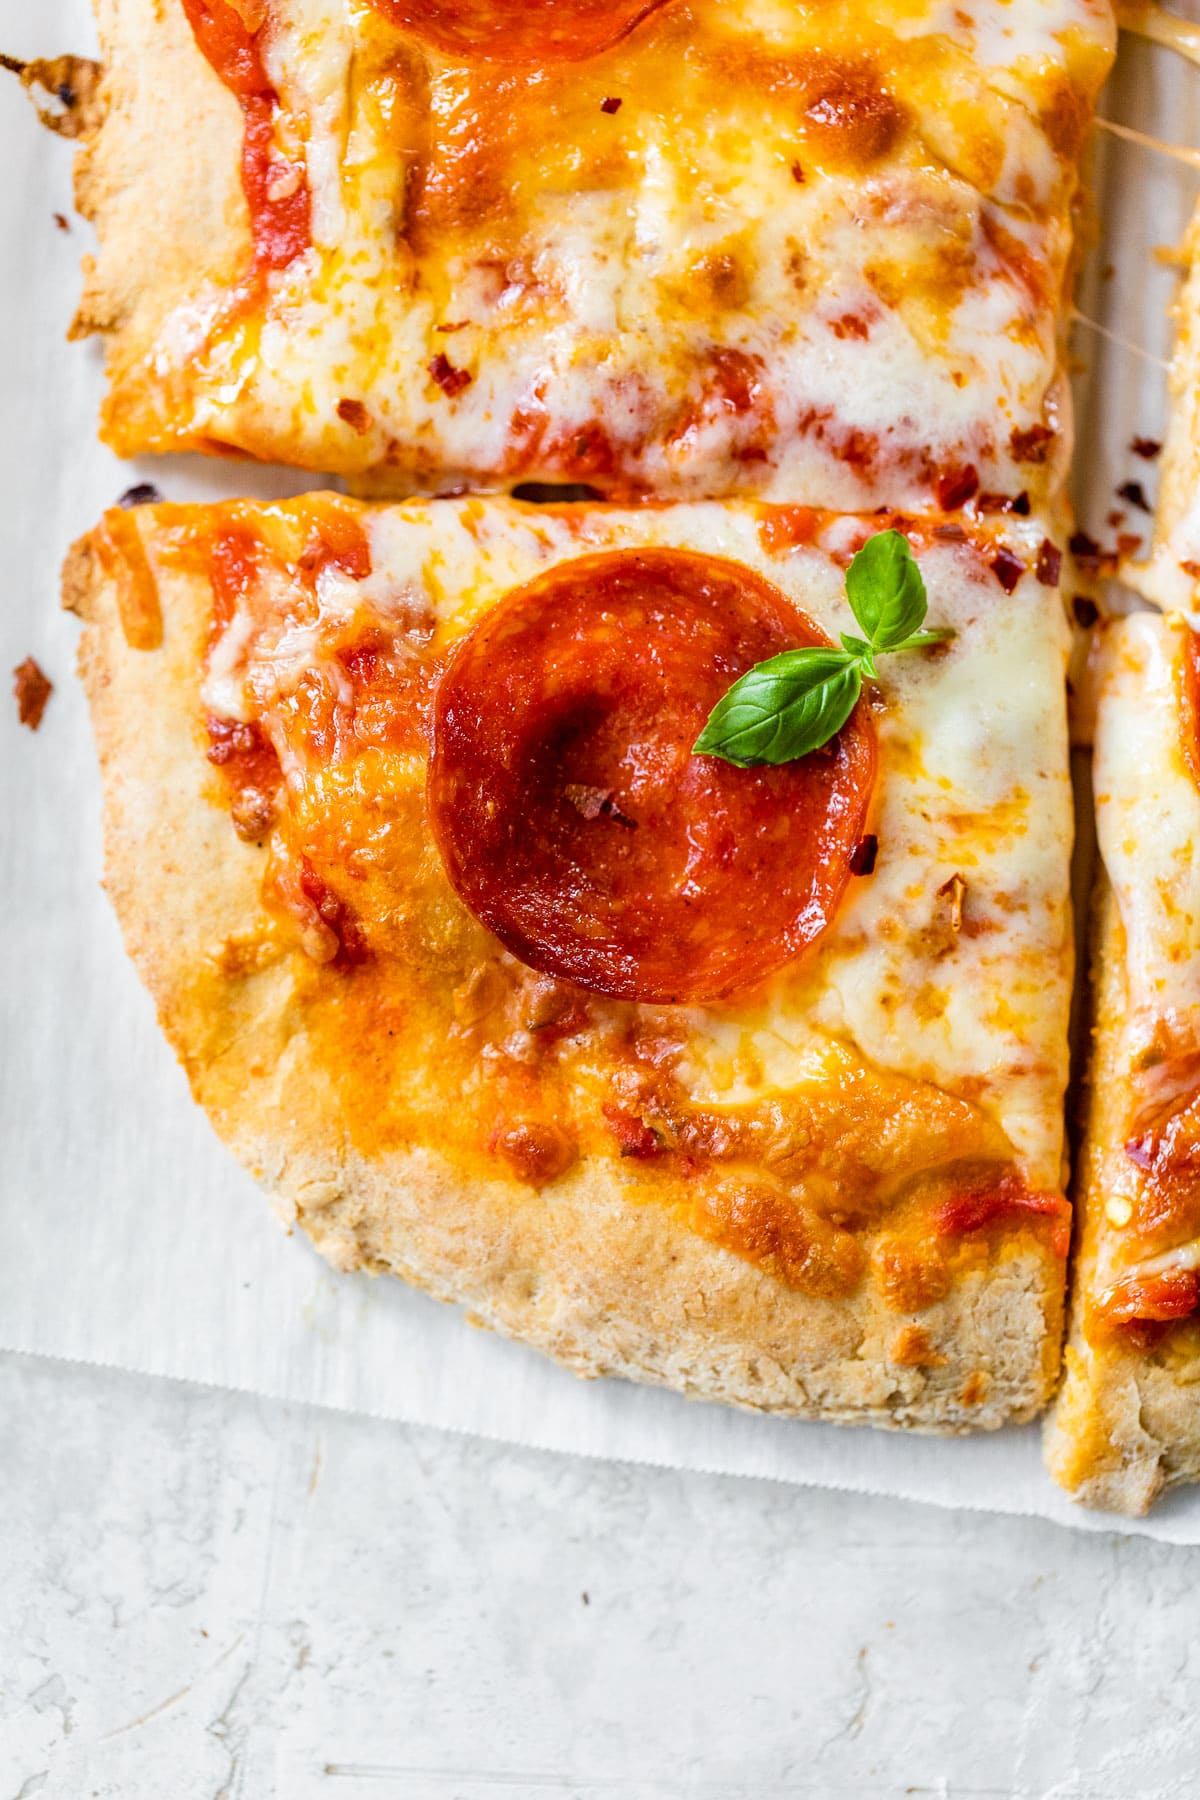 a pepperoni pizza made with whole wheat pizza crust sliced on parchment paper